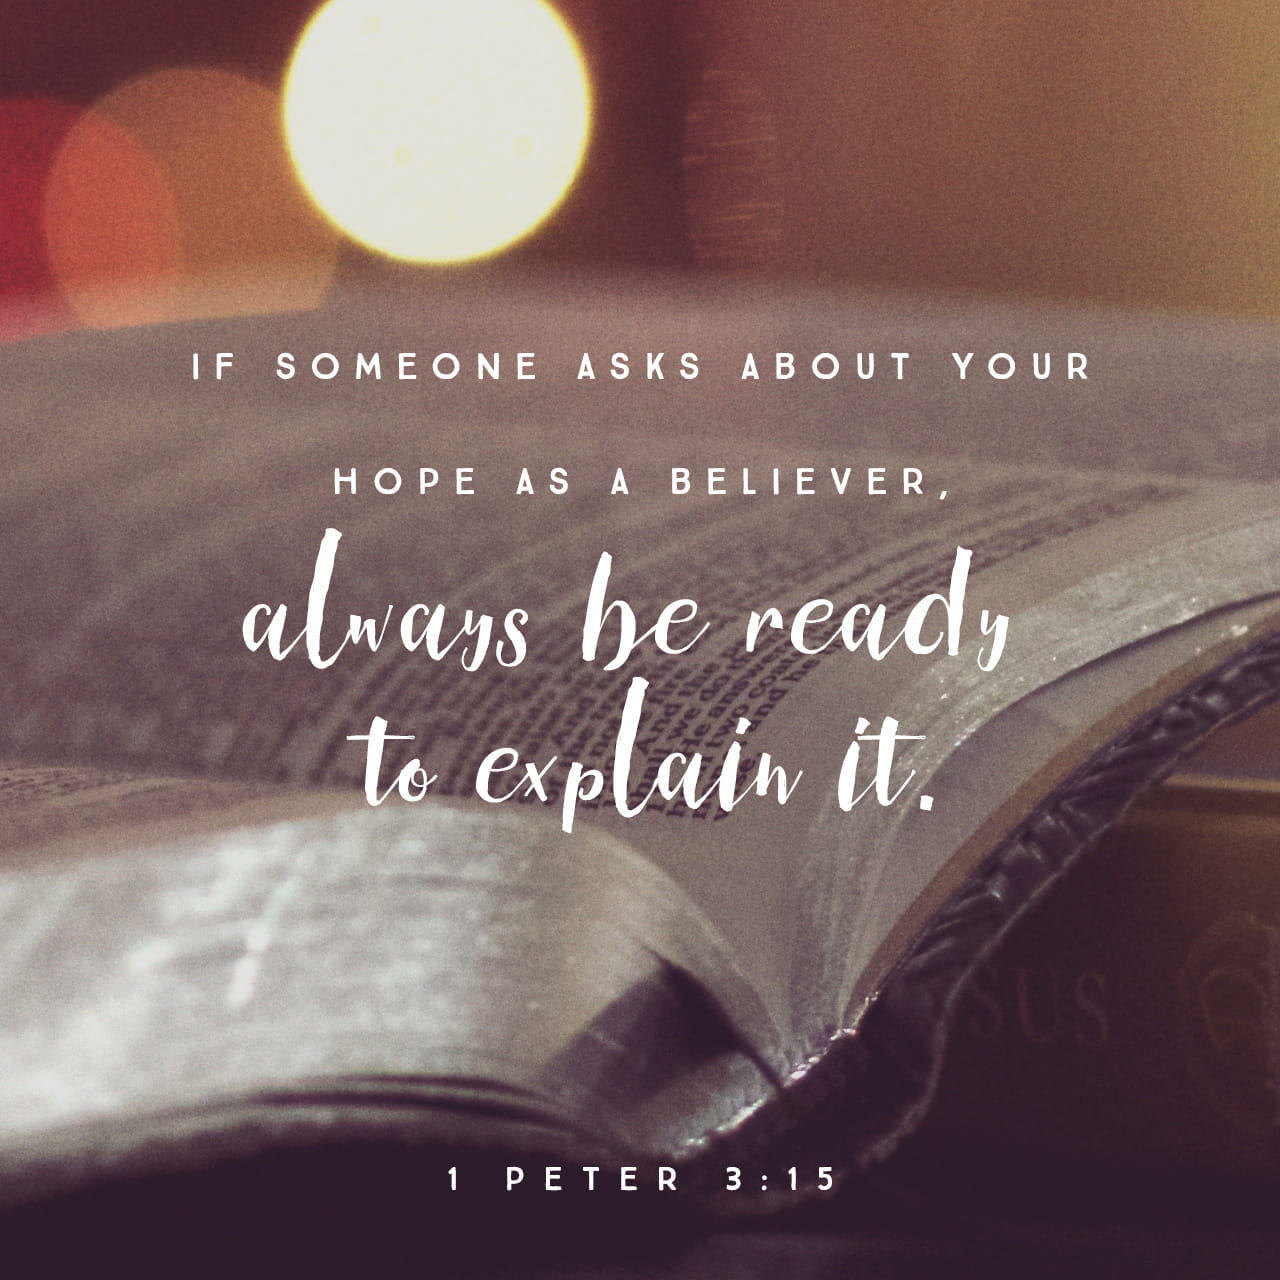 1 Peter 3:15 but sanctify in your hearts Christ as Lord: being ready always to give answer to every man that asketh you a reason concerning the hope that is in you, yet with meekness and fear | American Standard Version (ASV)